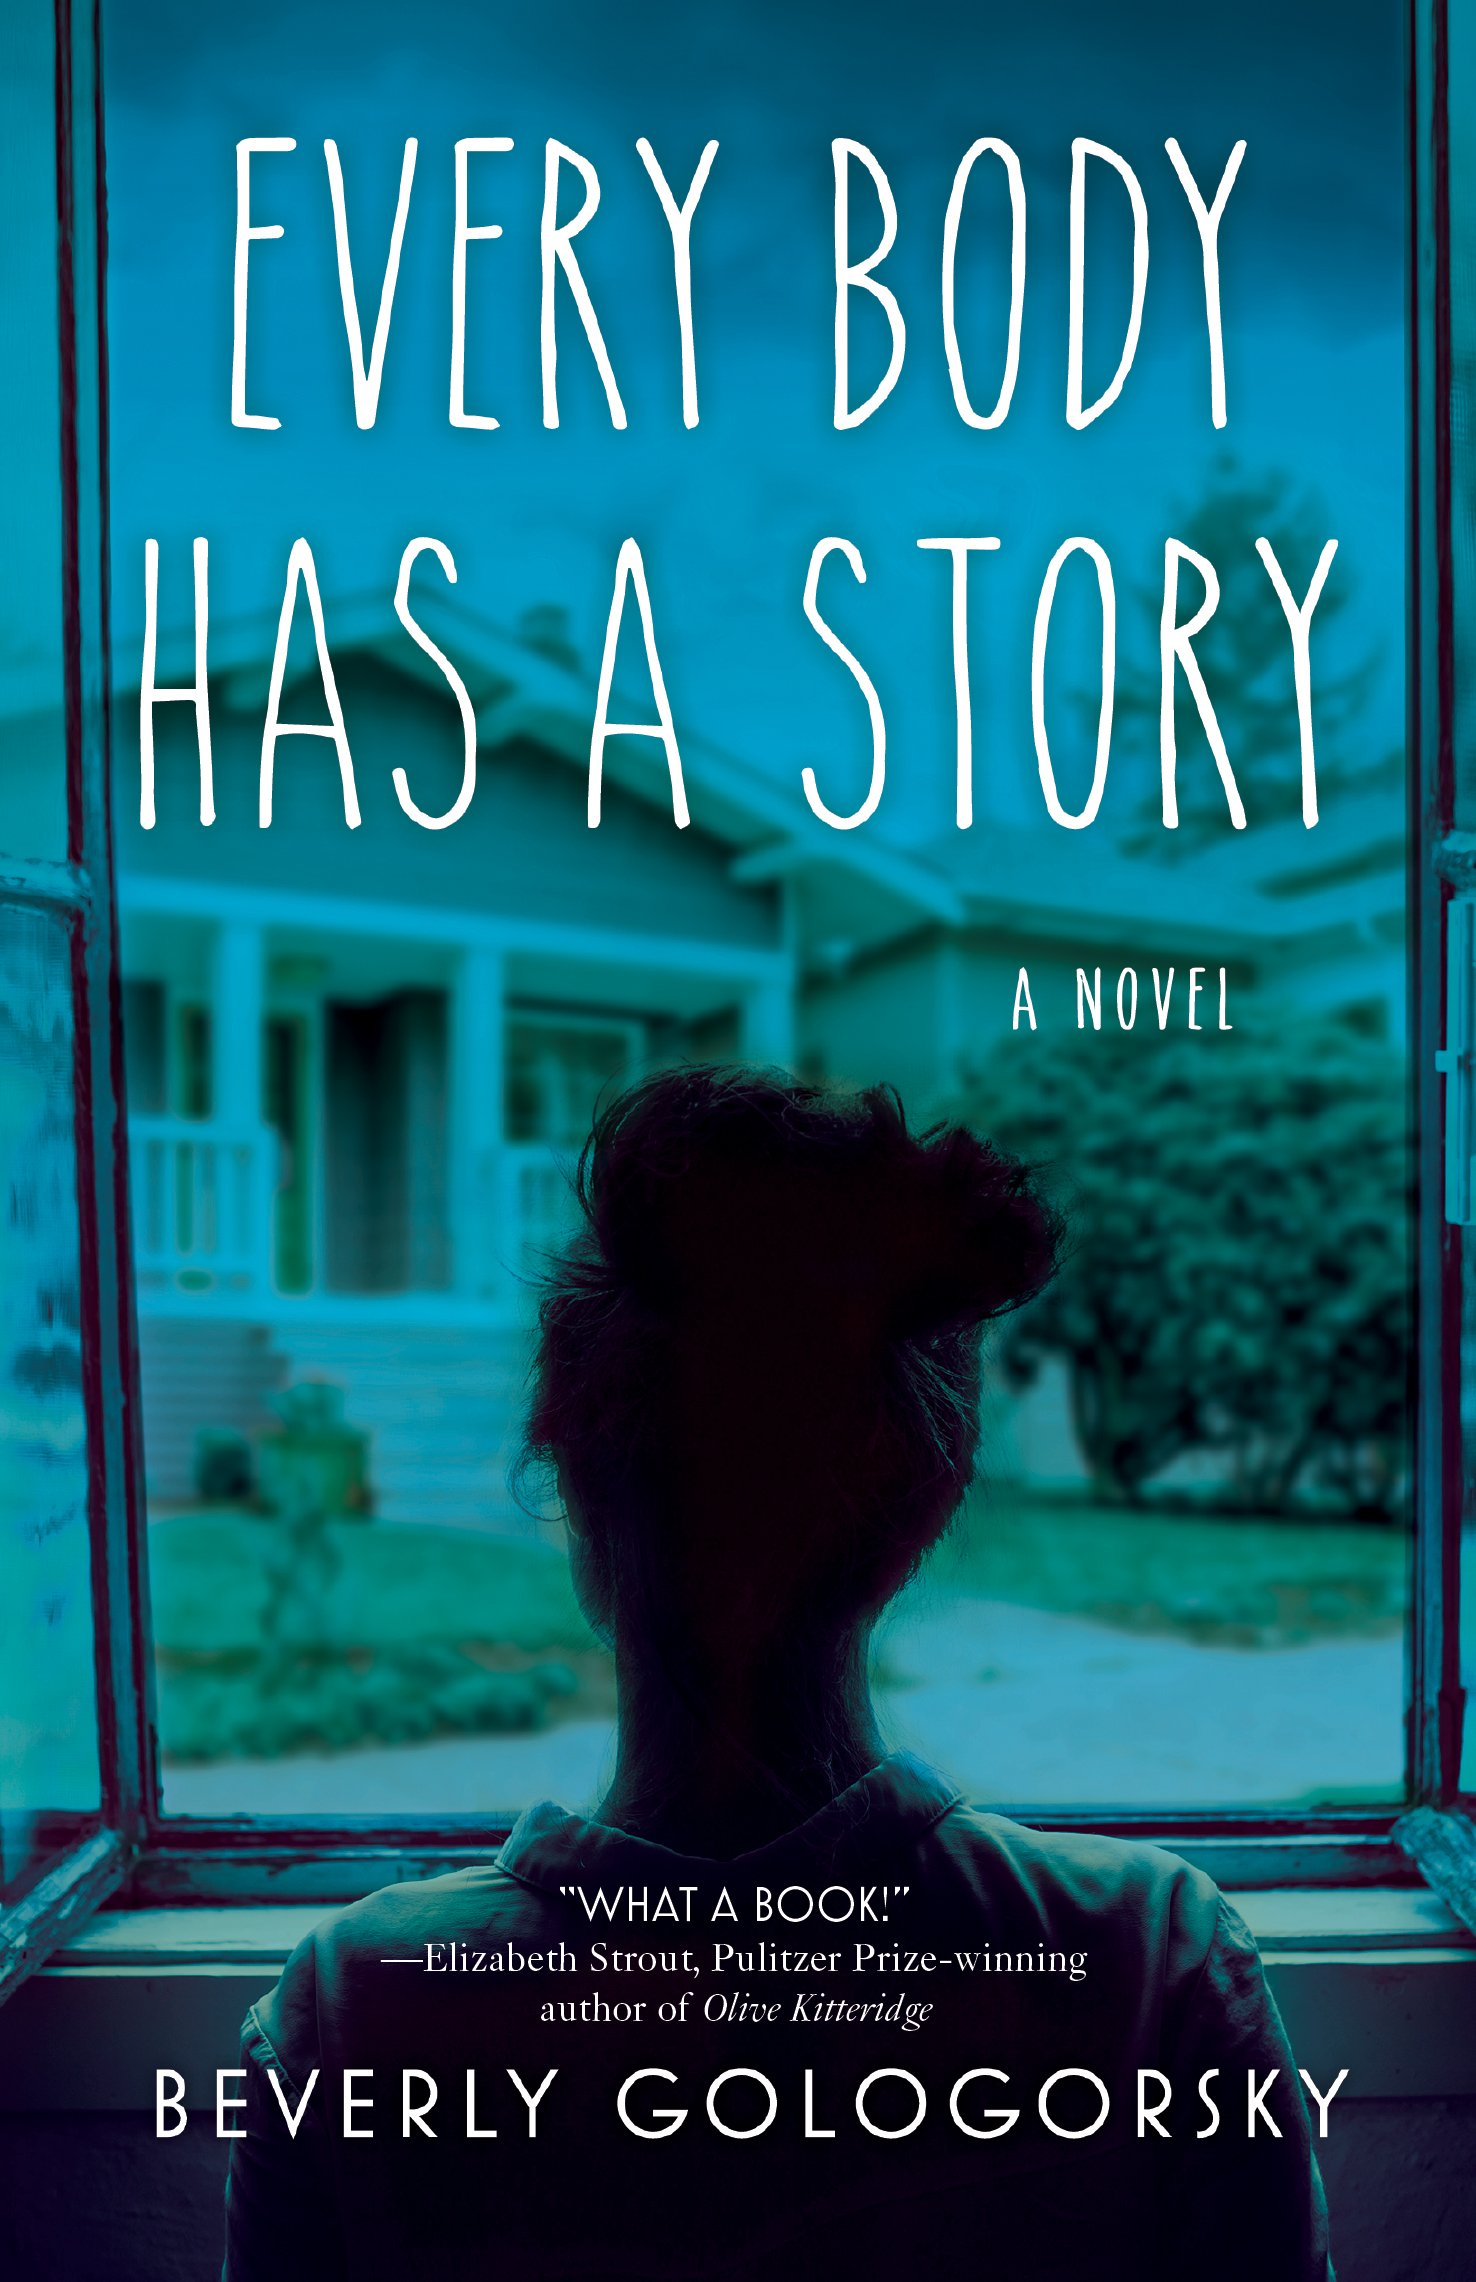 Every Body has a Story by Haymarket Books